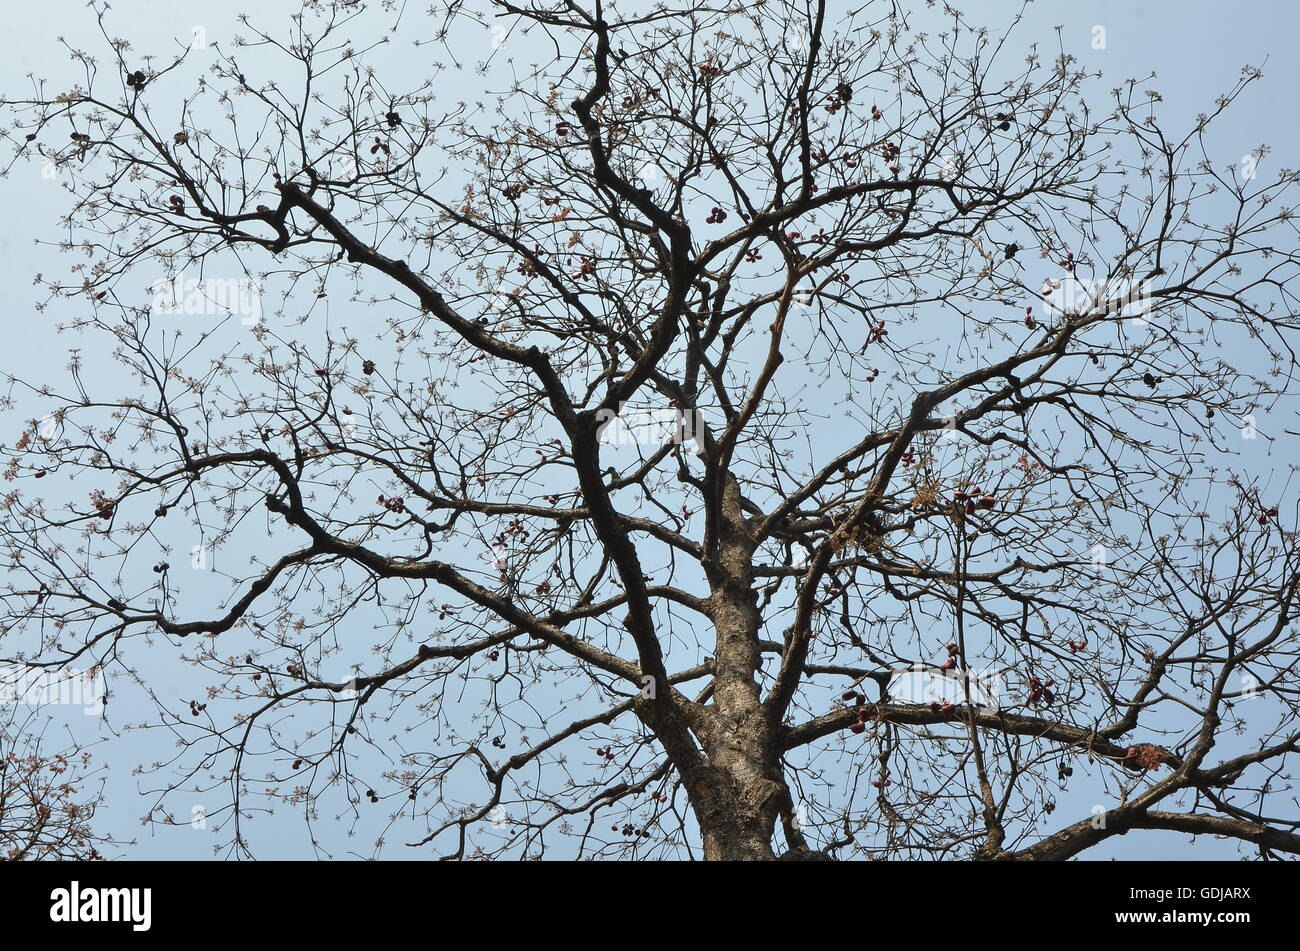 This leafless tree attracted everybody's attraction due to its widespread, dark skeletal branches against the - Stock Image